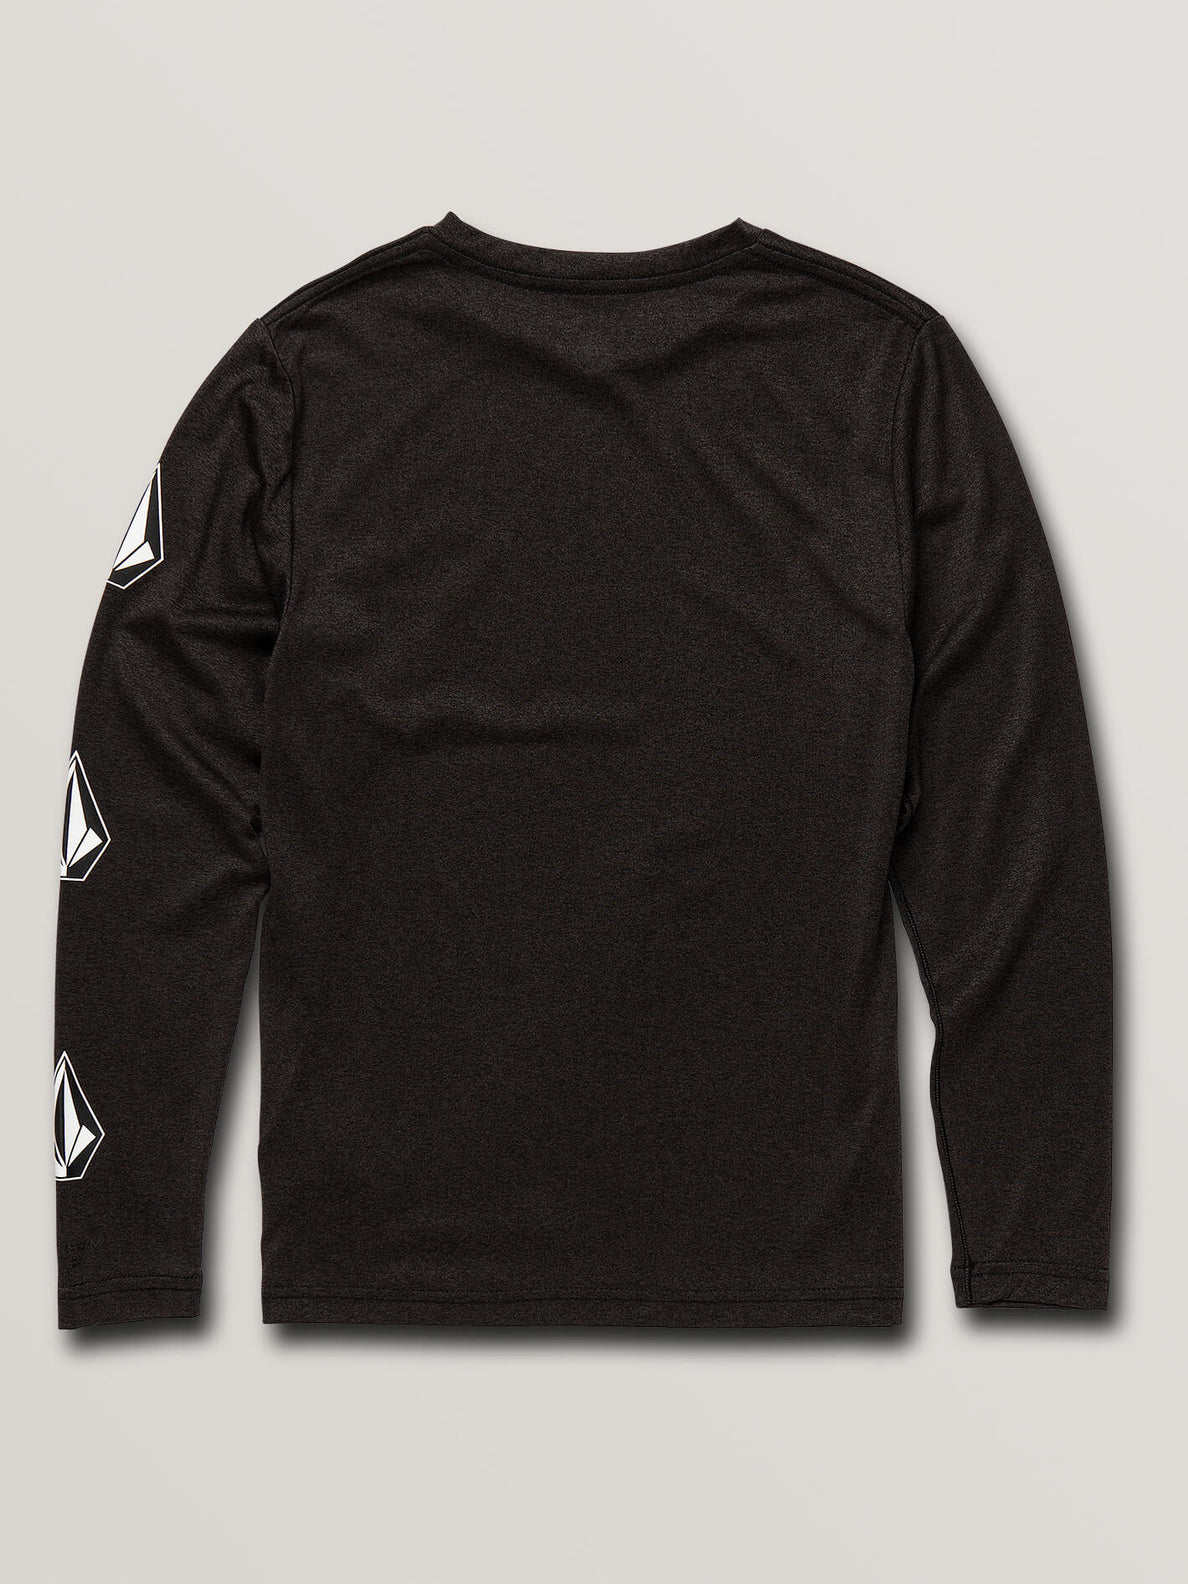 Deadly Stones Long Sleeve By - Black (P0341800_BLK) [B]